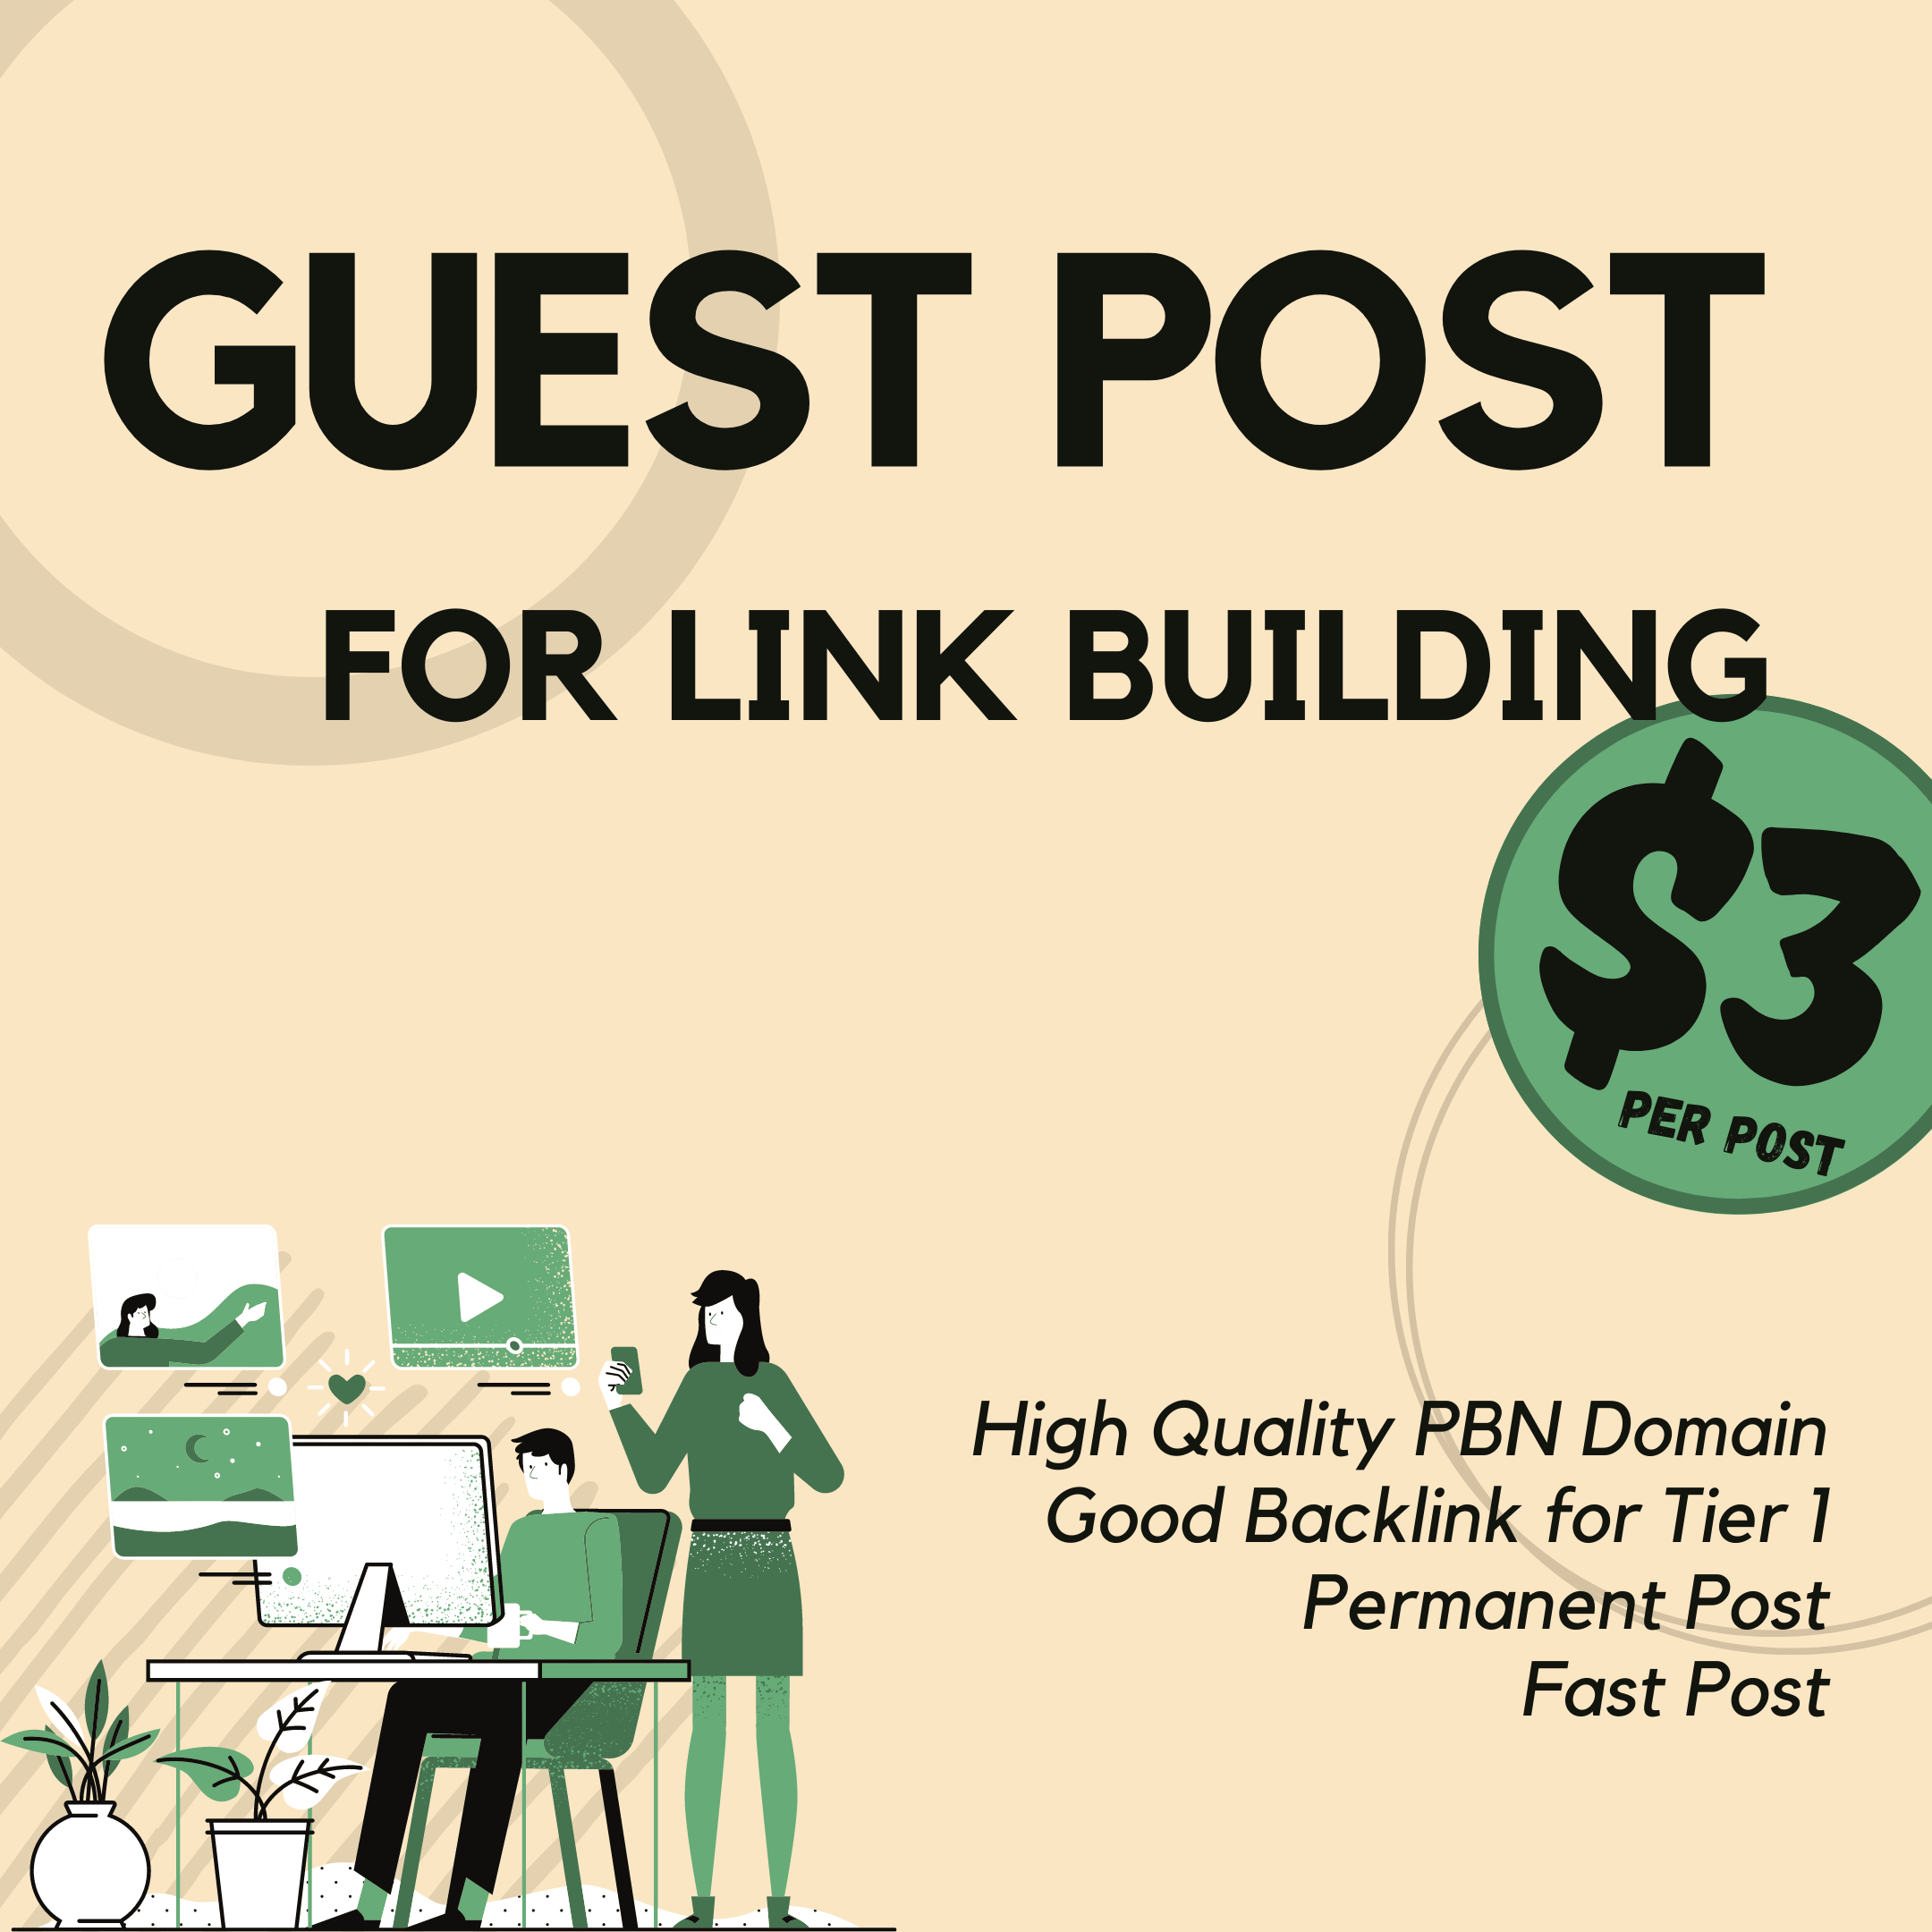 I will boost your website using my PBN for Guest Posing